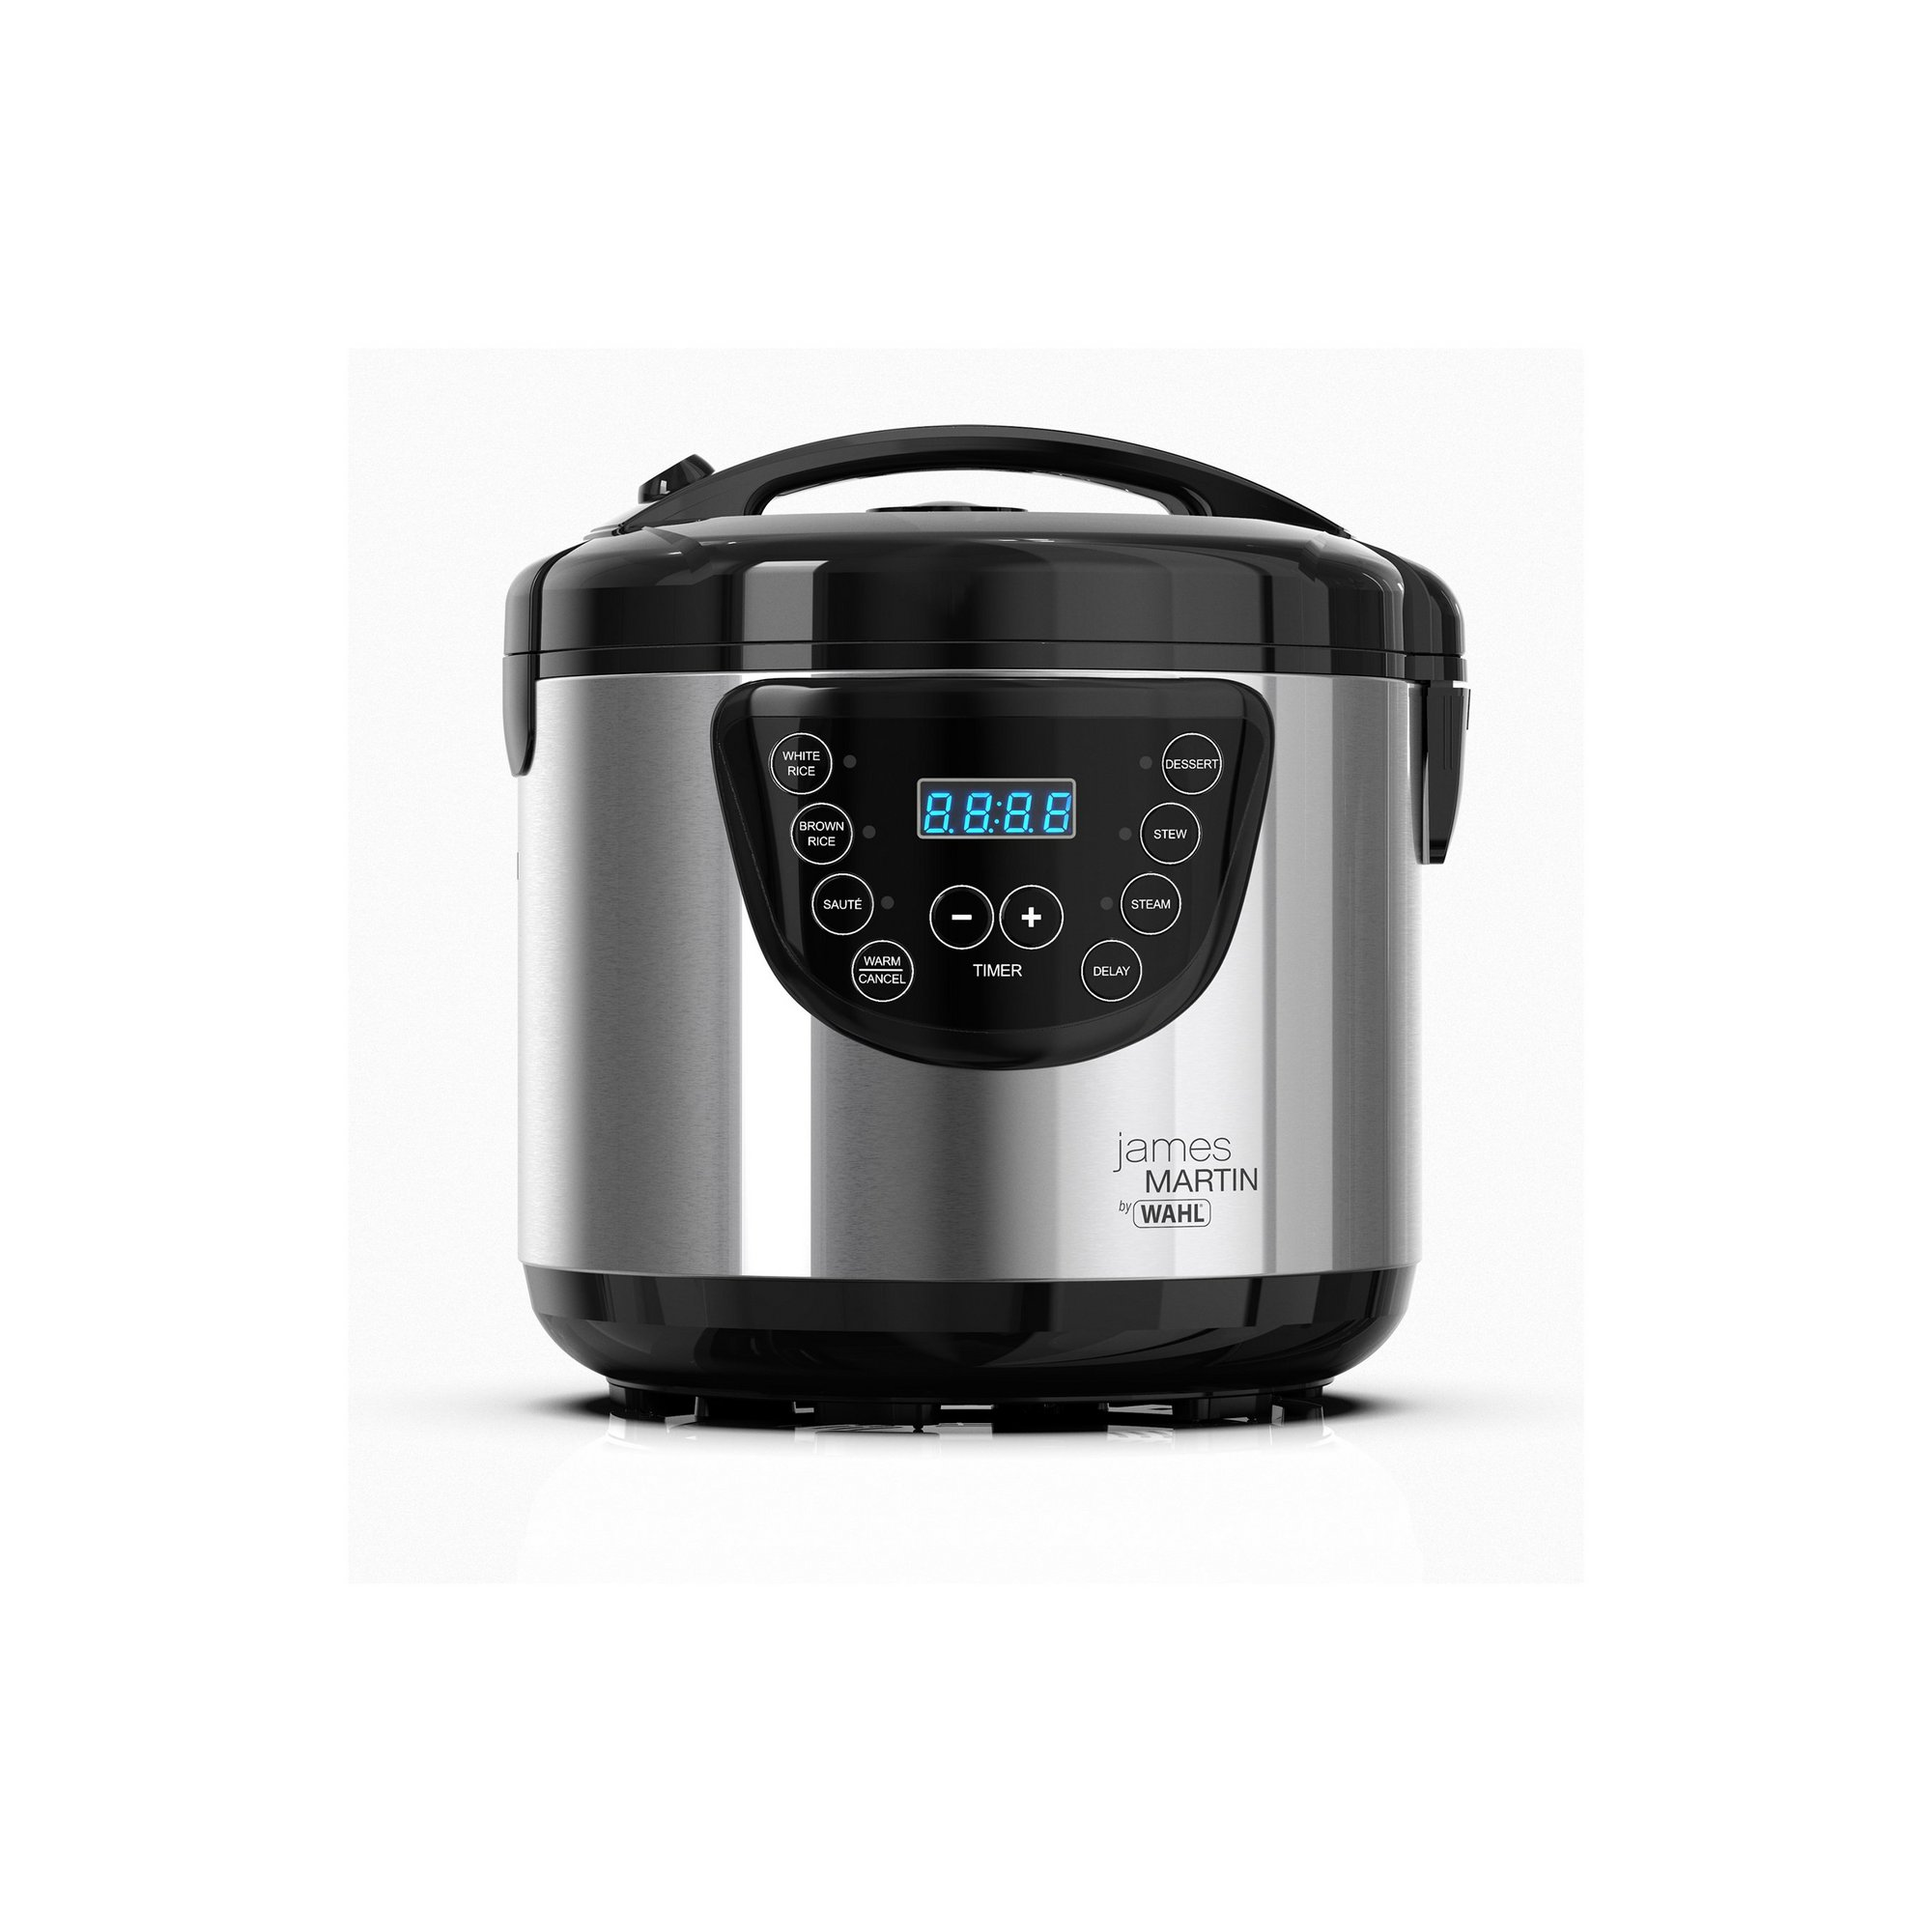 Image of James Martin By Wahl 4 Litre Digital Multi Cooker